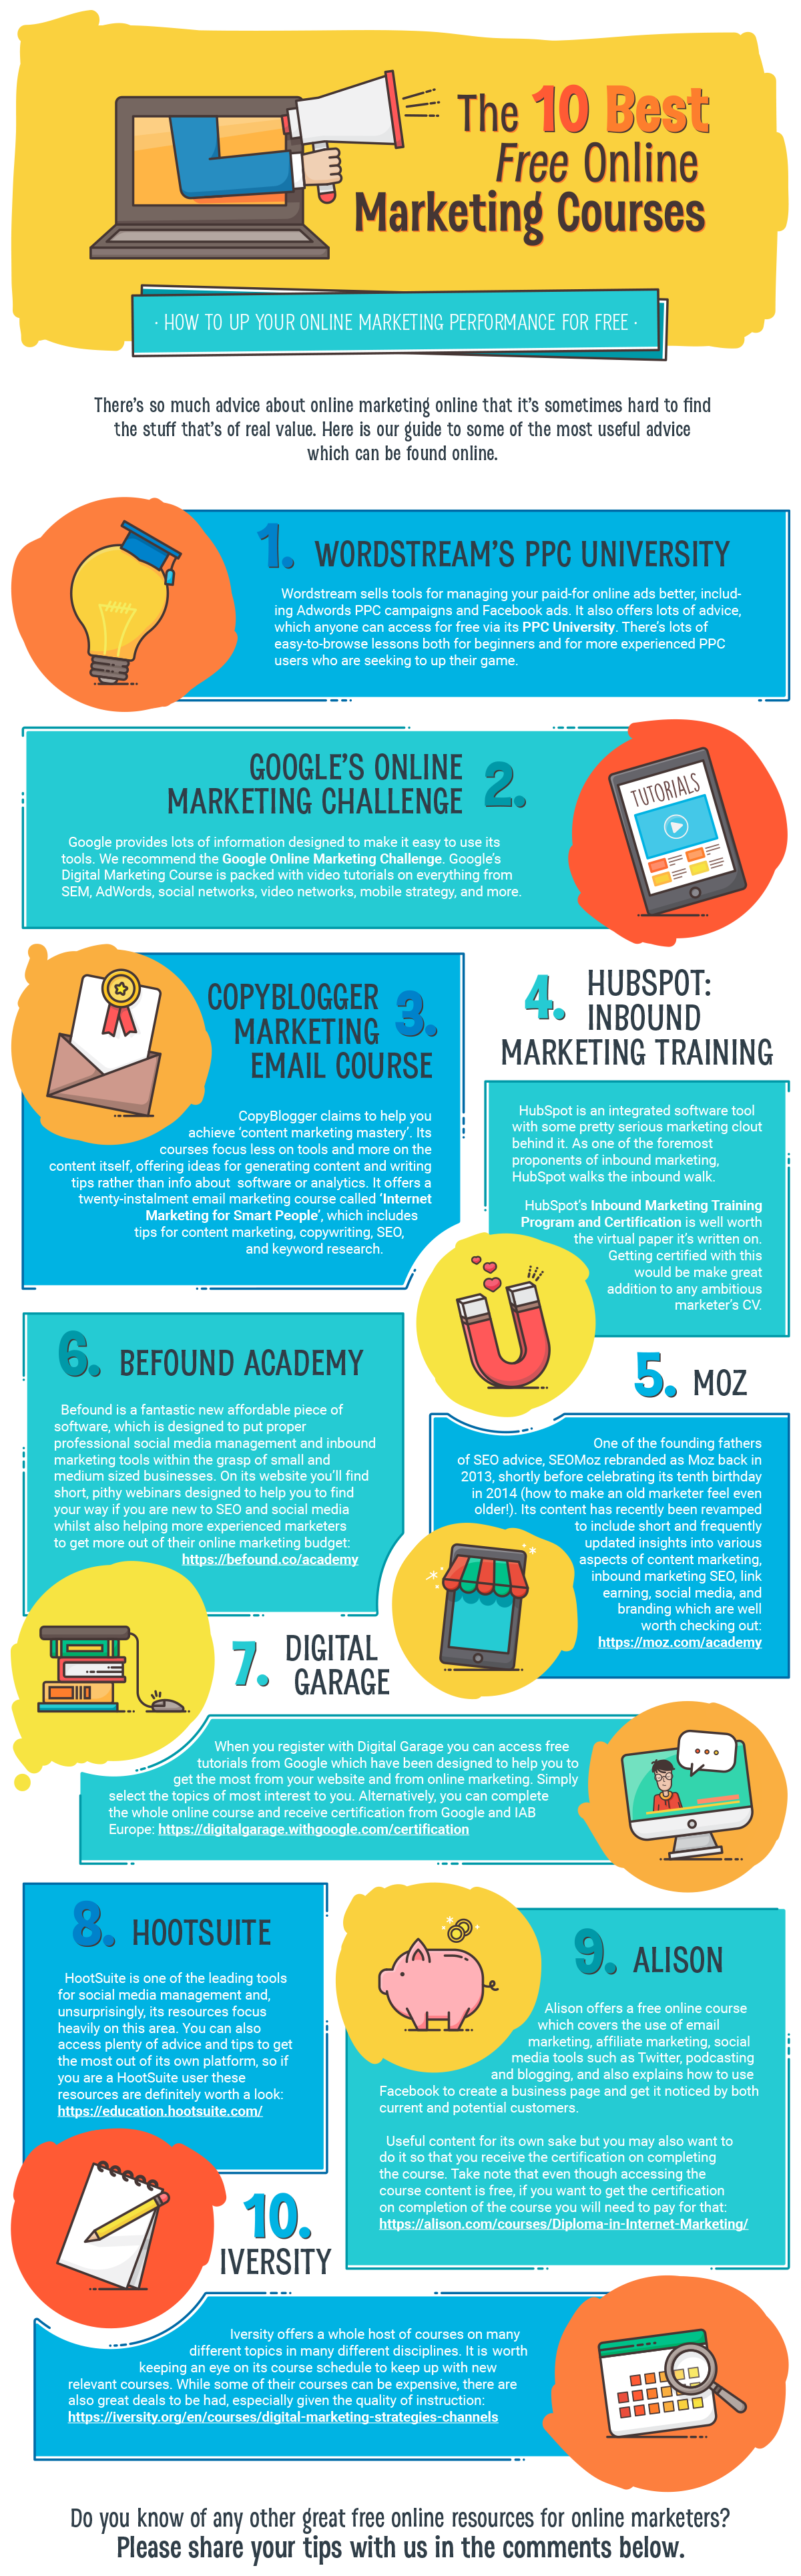 The 10 Best Free Online Marketing Courses #Infographic